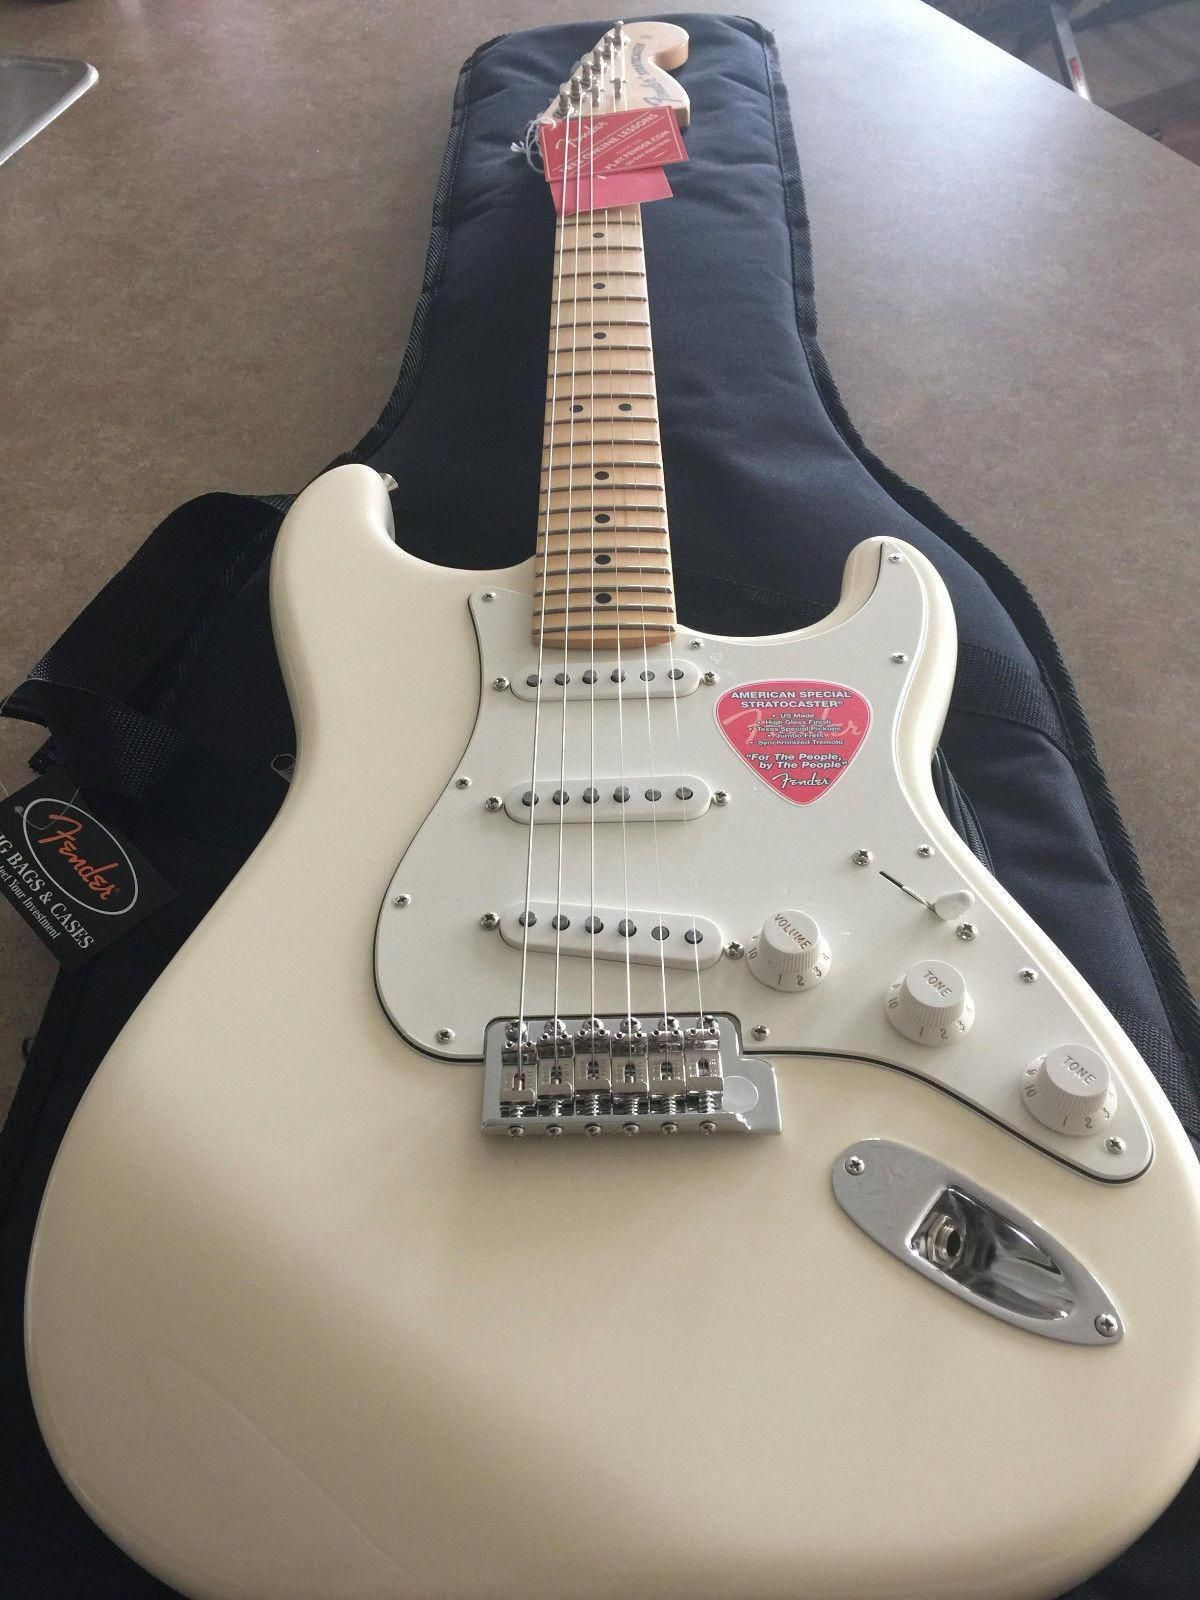 On The Look For A Quality Guitar Check This Out Fenderstrat